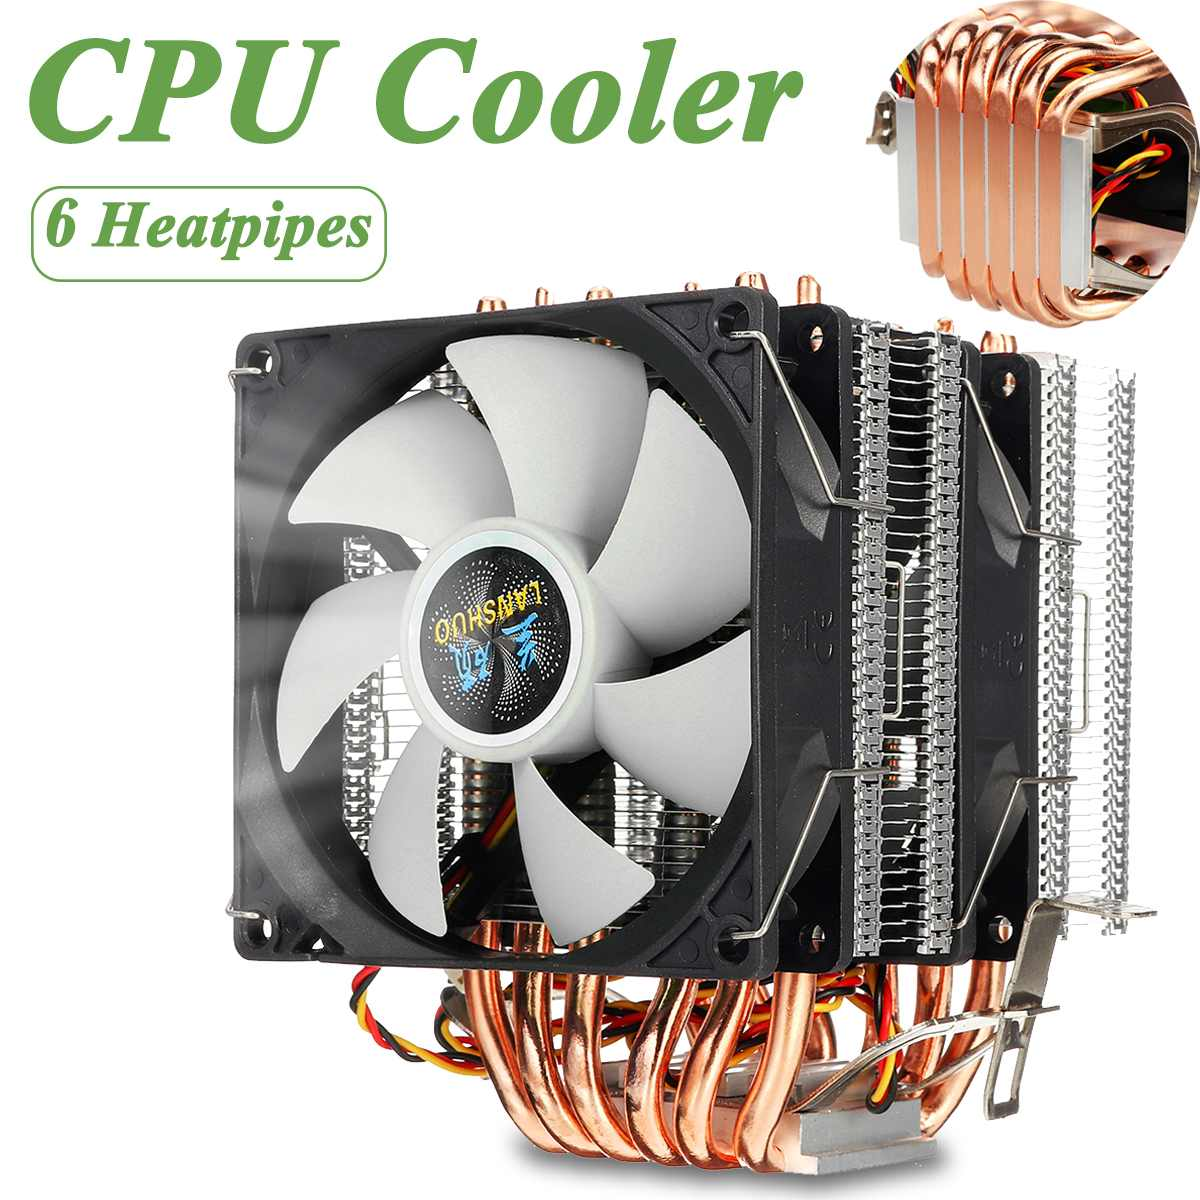 CPU Cooler 6 Heat Pipes 3pin Dual Fan Cooler Quiet Cooling Fan Heatsink Radiator for LGA 1150/1151/1155/1156/1366/775 for AMD image